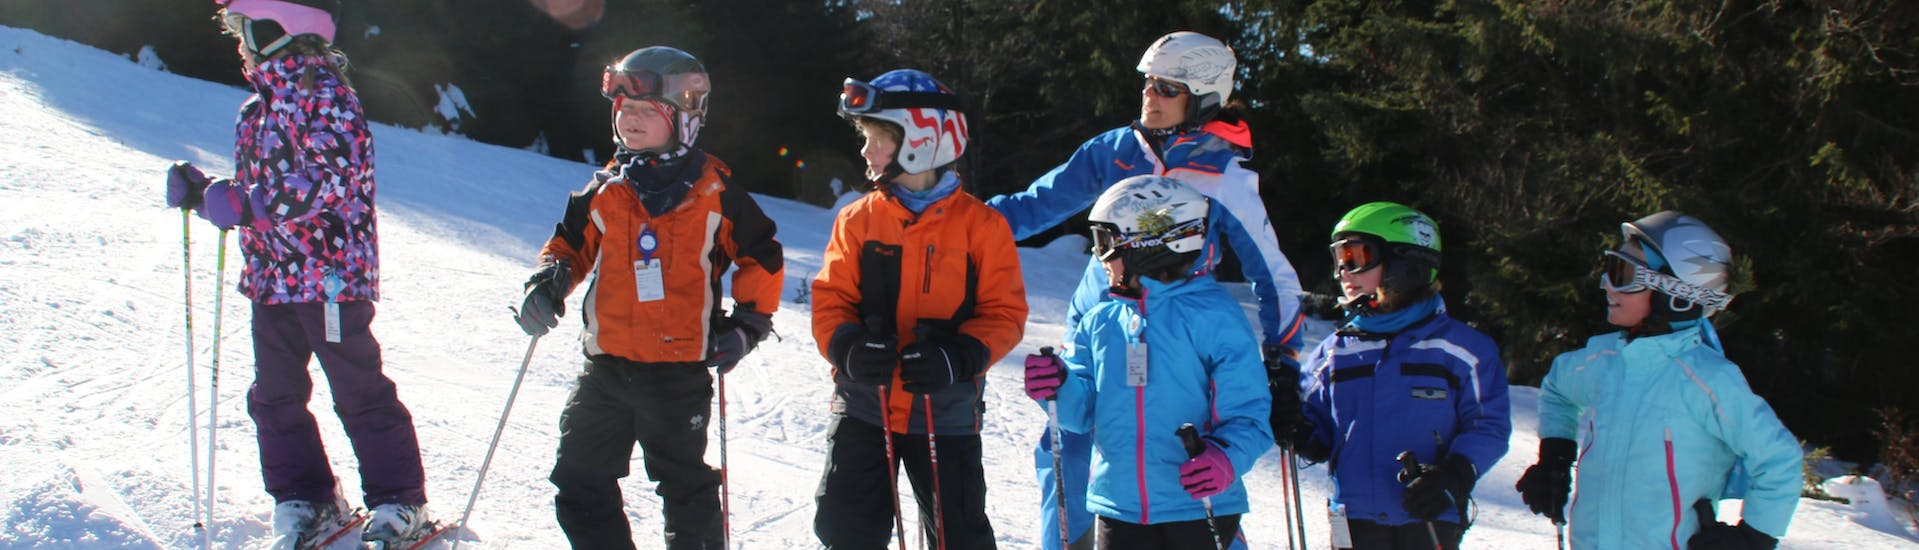 Kids Ski Lessons (3-12 y.) - All in One with Ski & Snowboard School Ostrachtal - Hero image